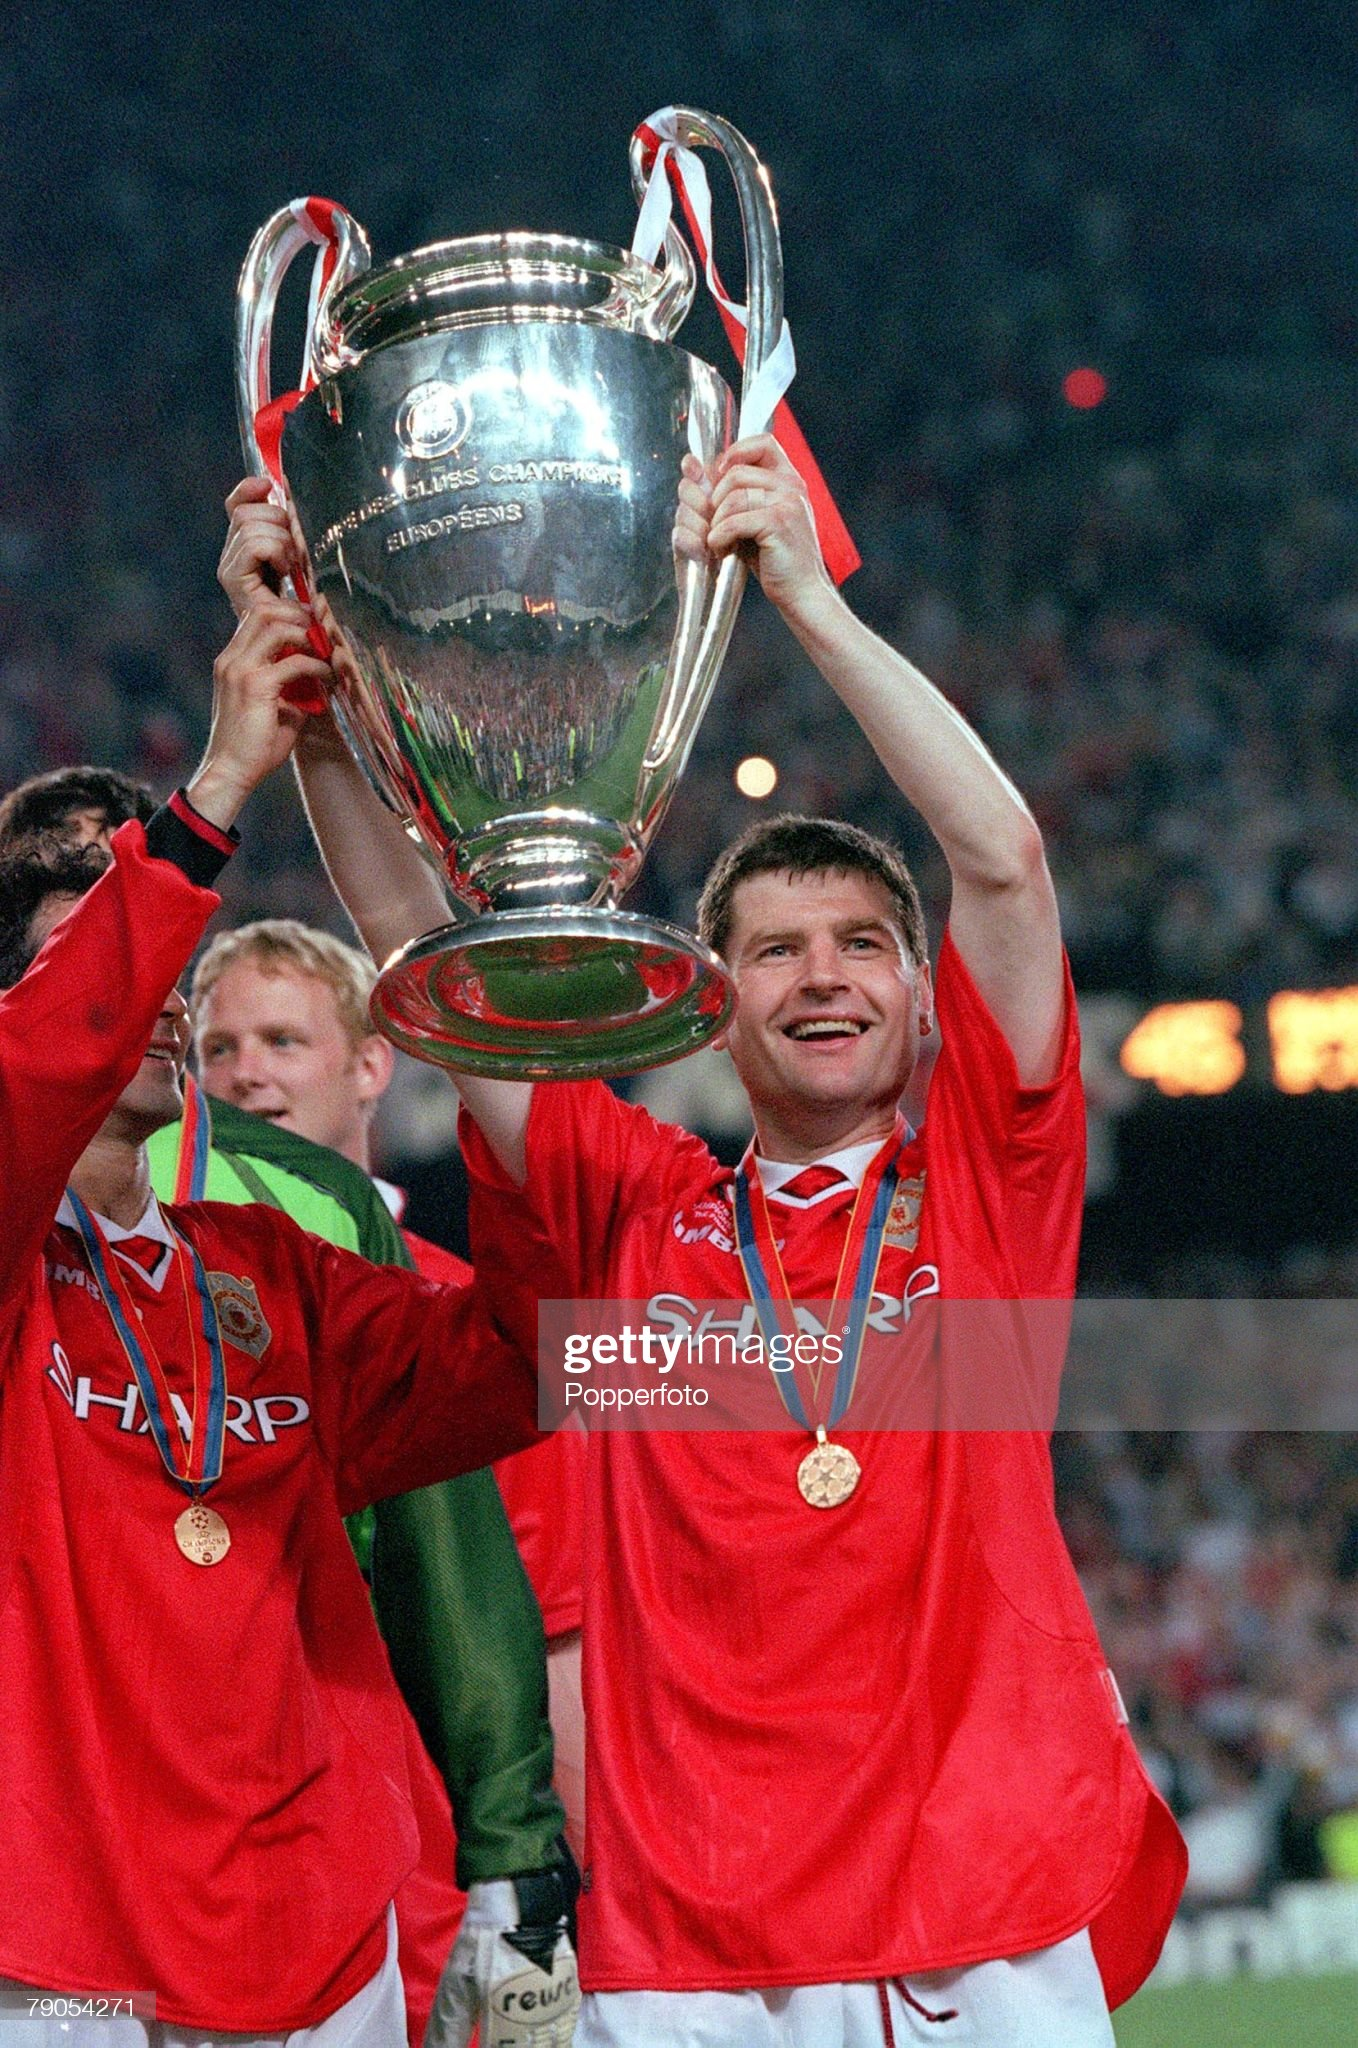 26th MAY 1999. UEFA Champions League Final. Barcelona, Spain. Manchester United 2 v Bayern Munich 1. Manchester United's Denis Irwin lifts the European trophy. : News Photo